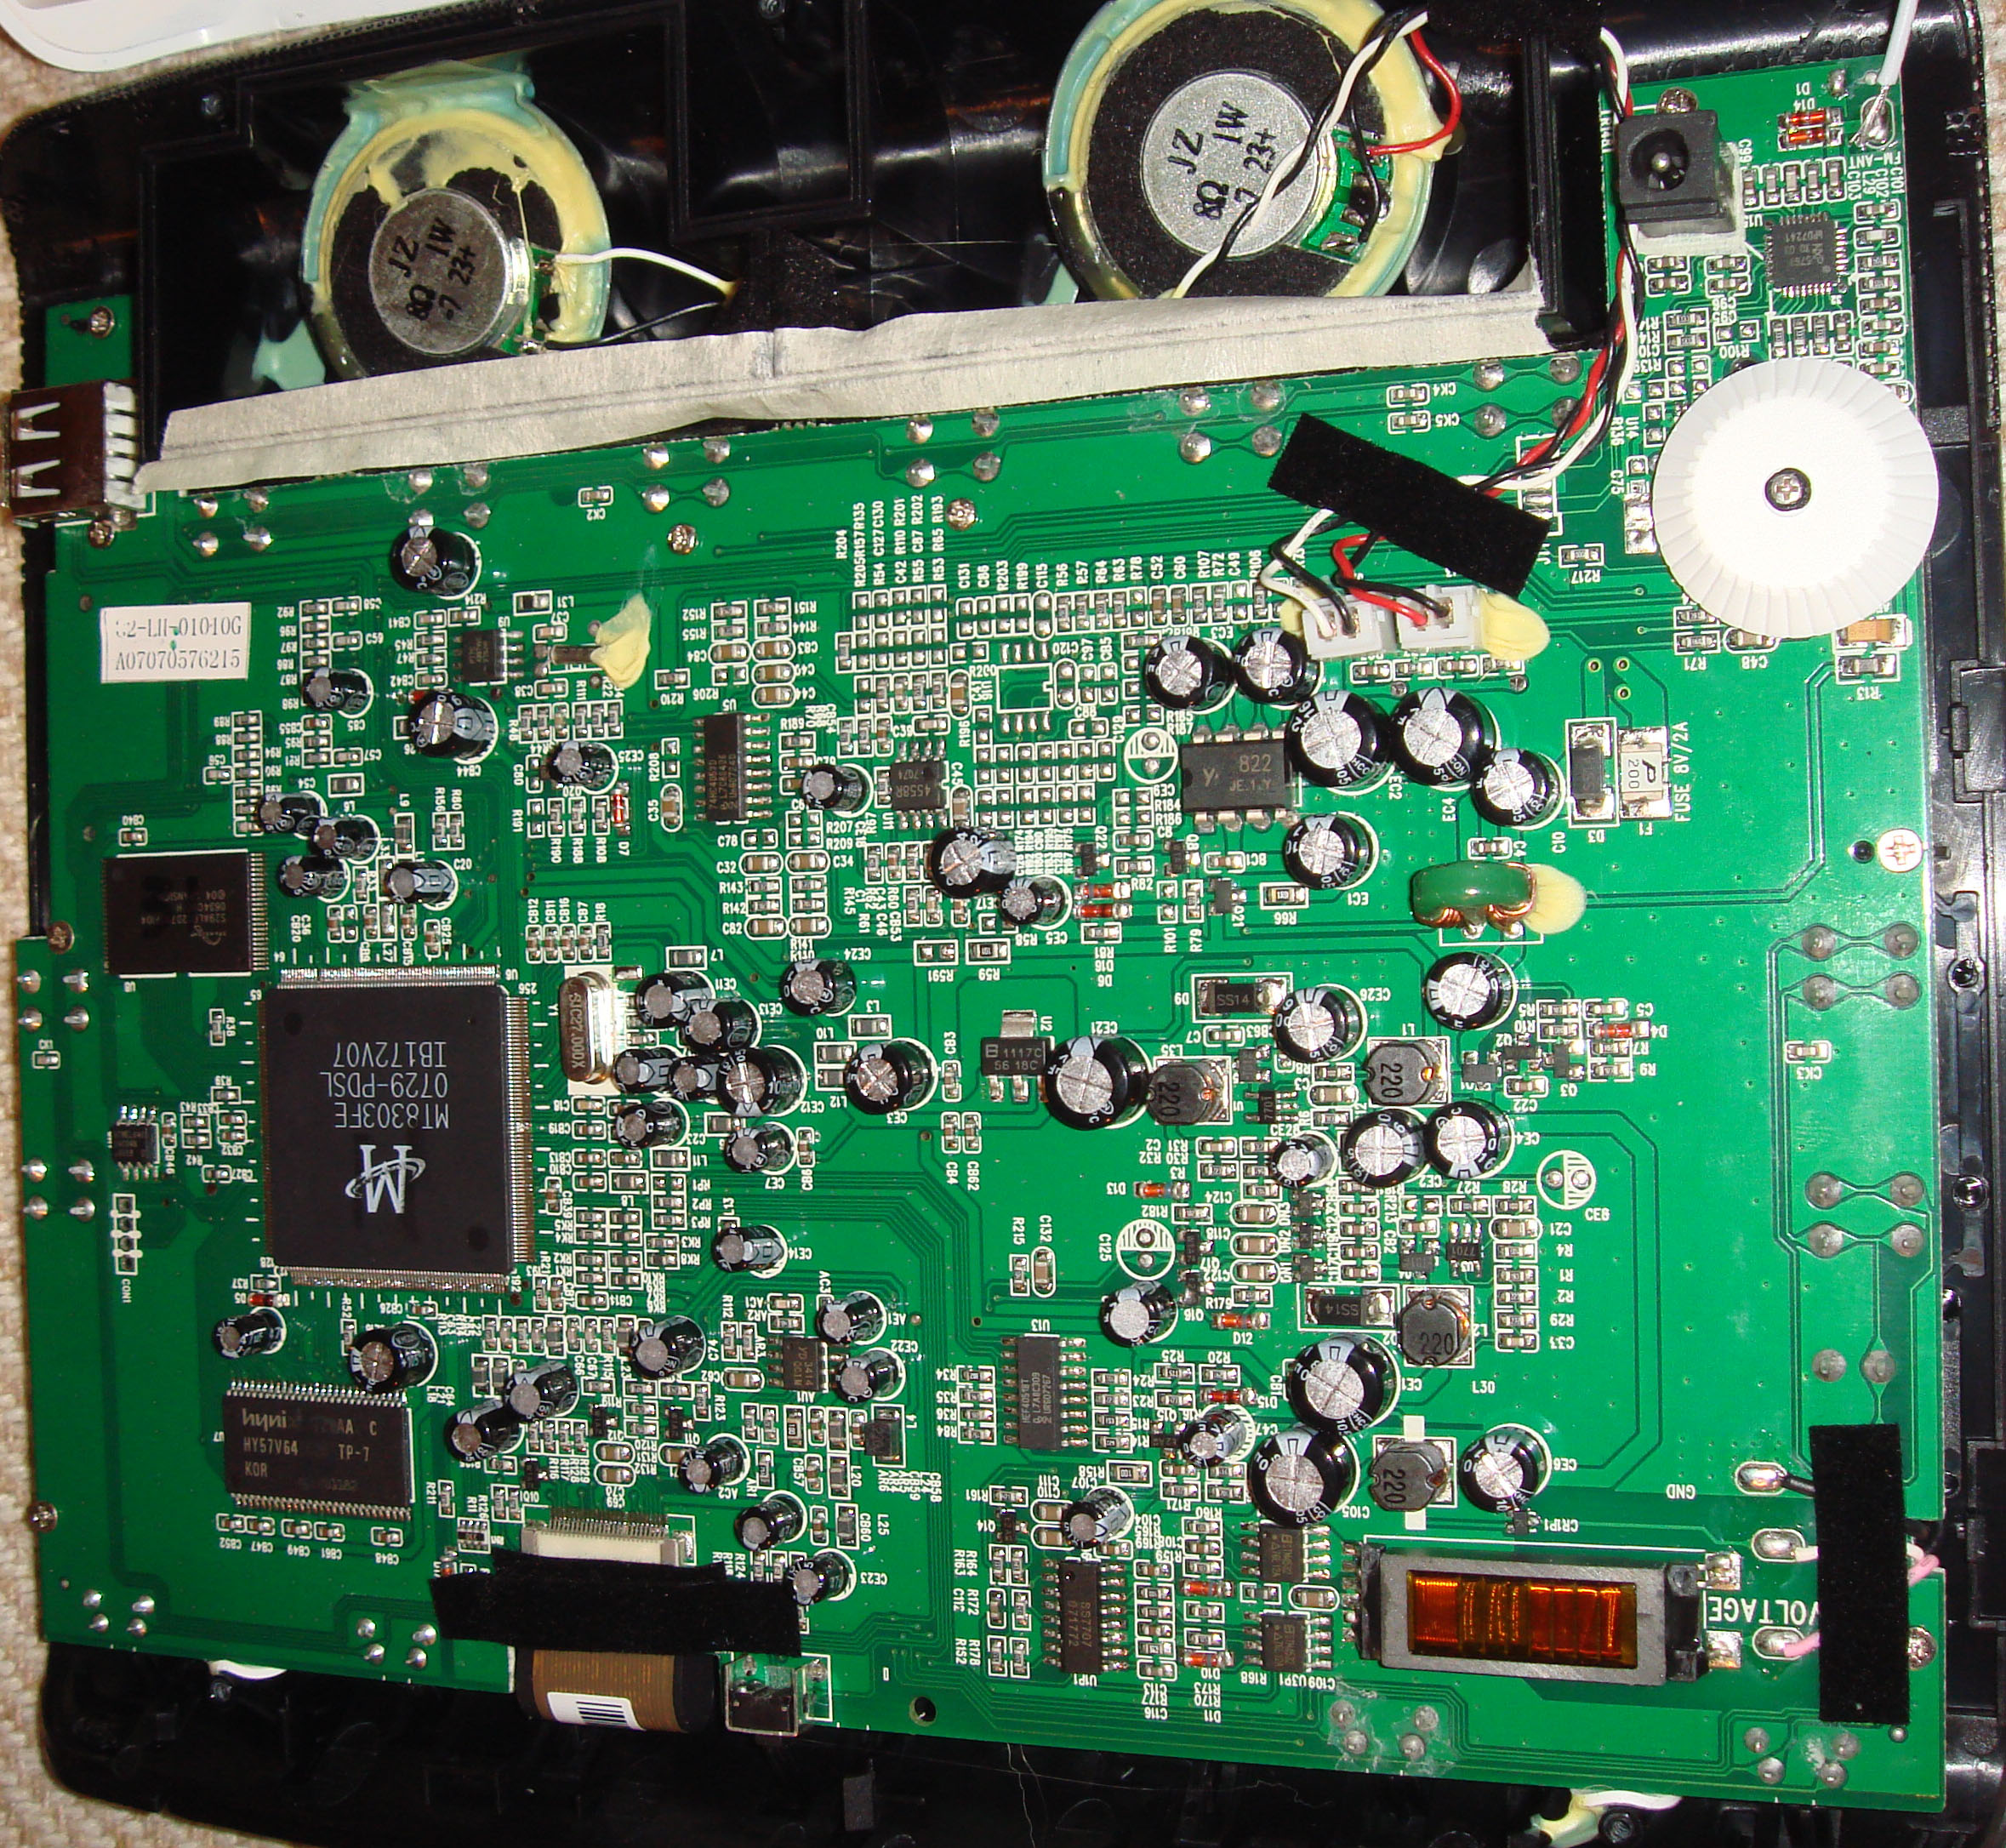 Bunnies Blog Of Green Electronic Circuit Tracks And Pathways Photo Title Im Guessing This Ware Shouldnt Be Too Hard However If Anyone Happens To Know Where I Can Get A Datasheet For The Mt8303 Chip On Pcb Id Appreciate